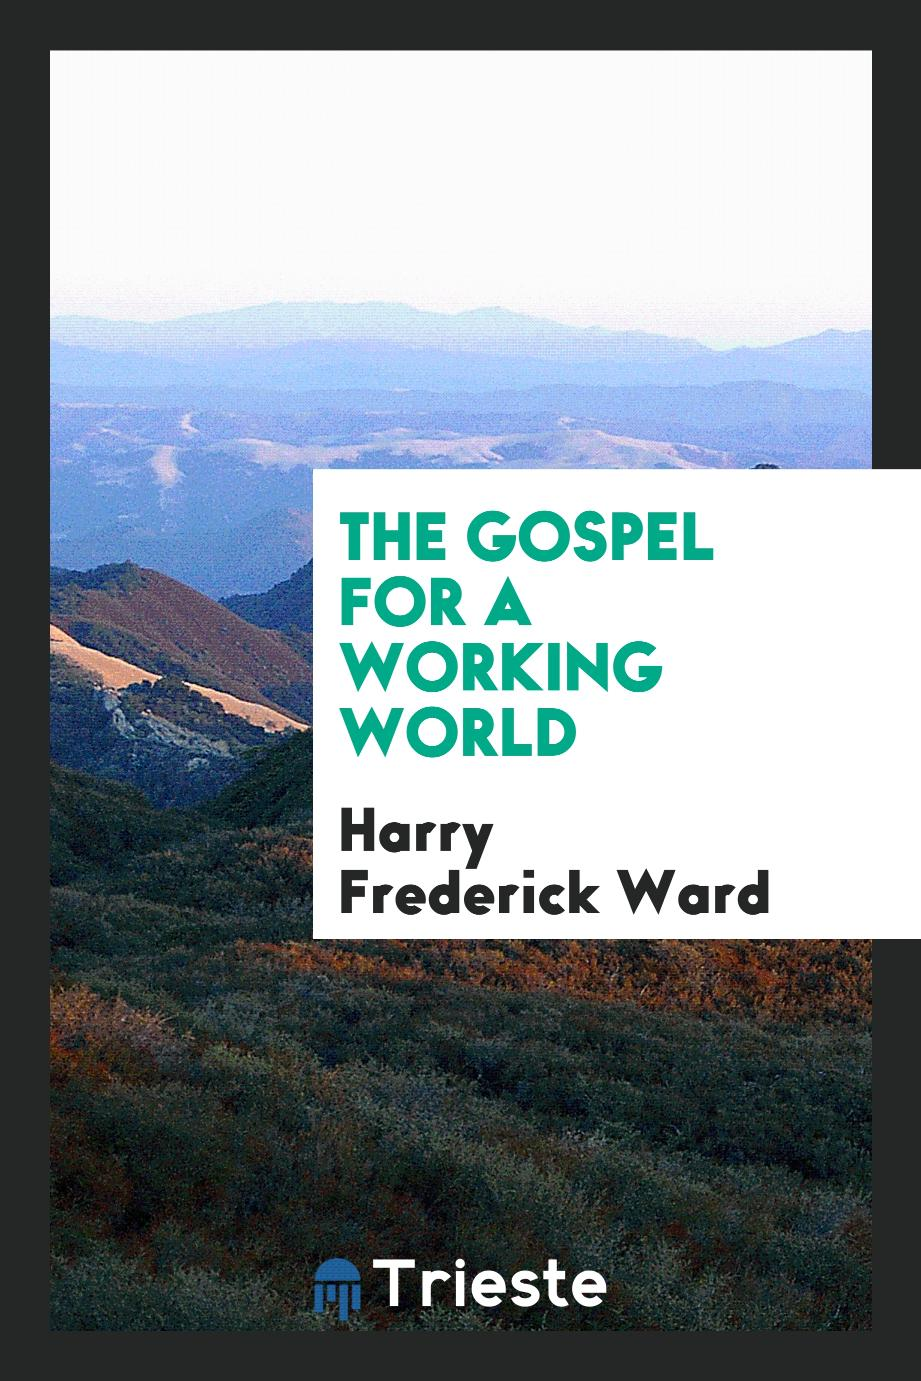 The Gospel for a Working World